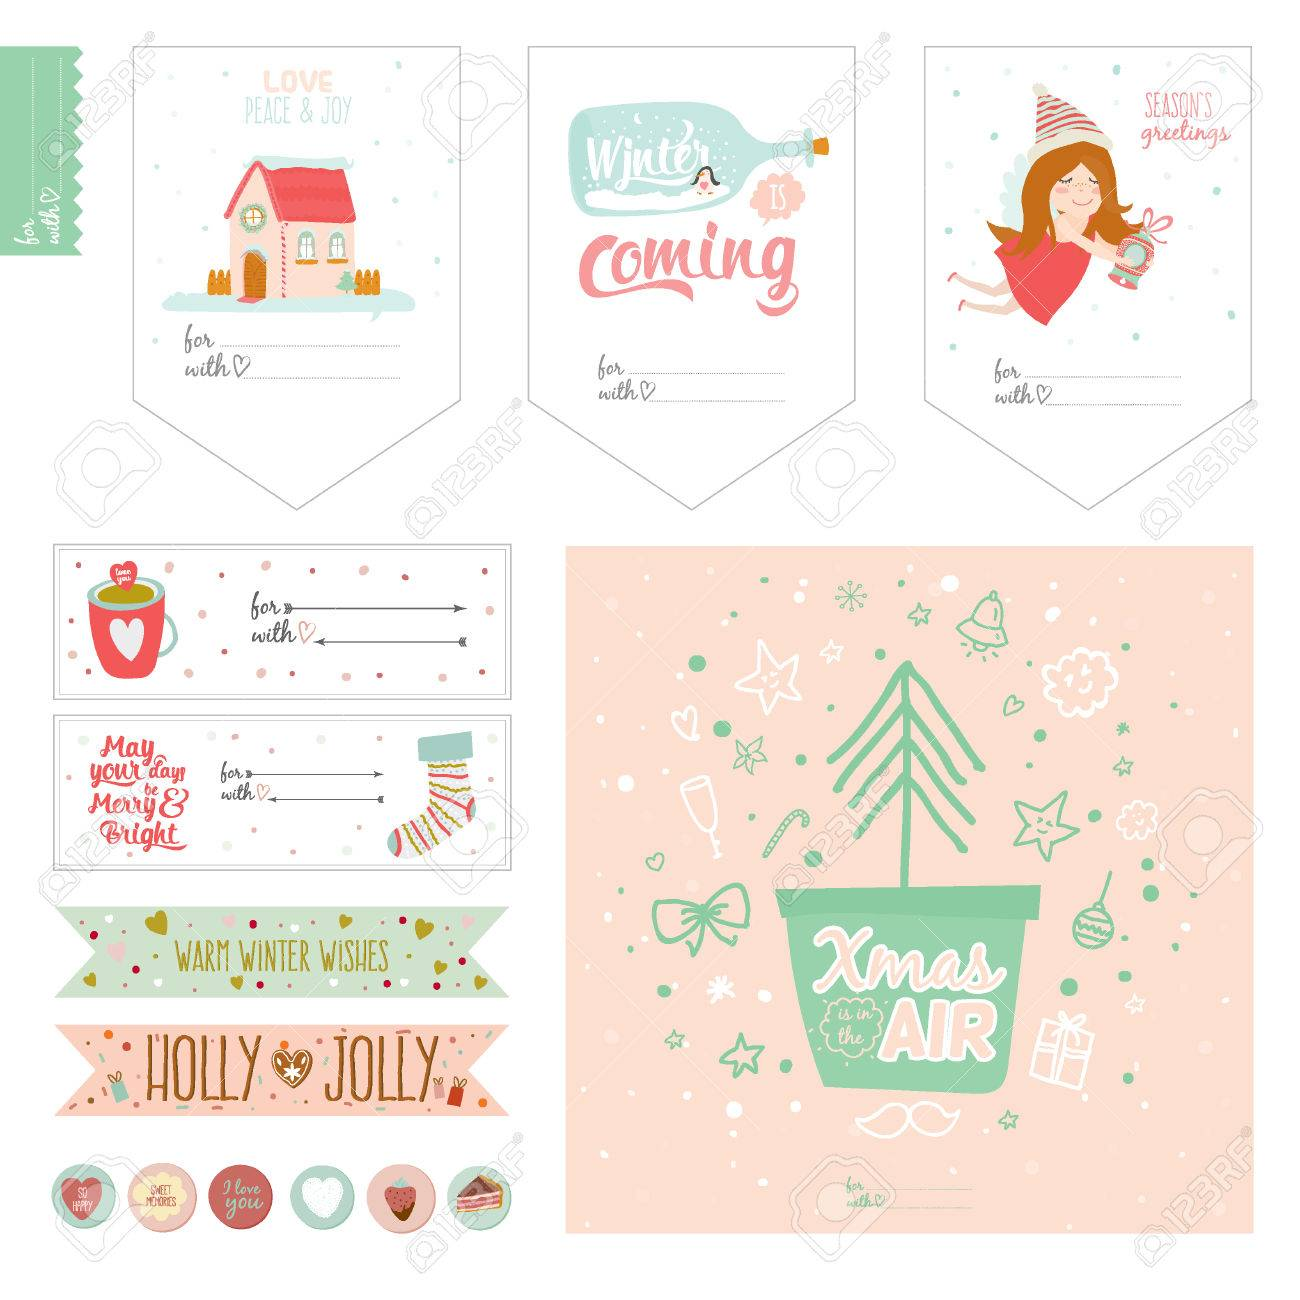 romantic and love cards, notes, stickers, labels, tags with cute